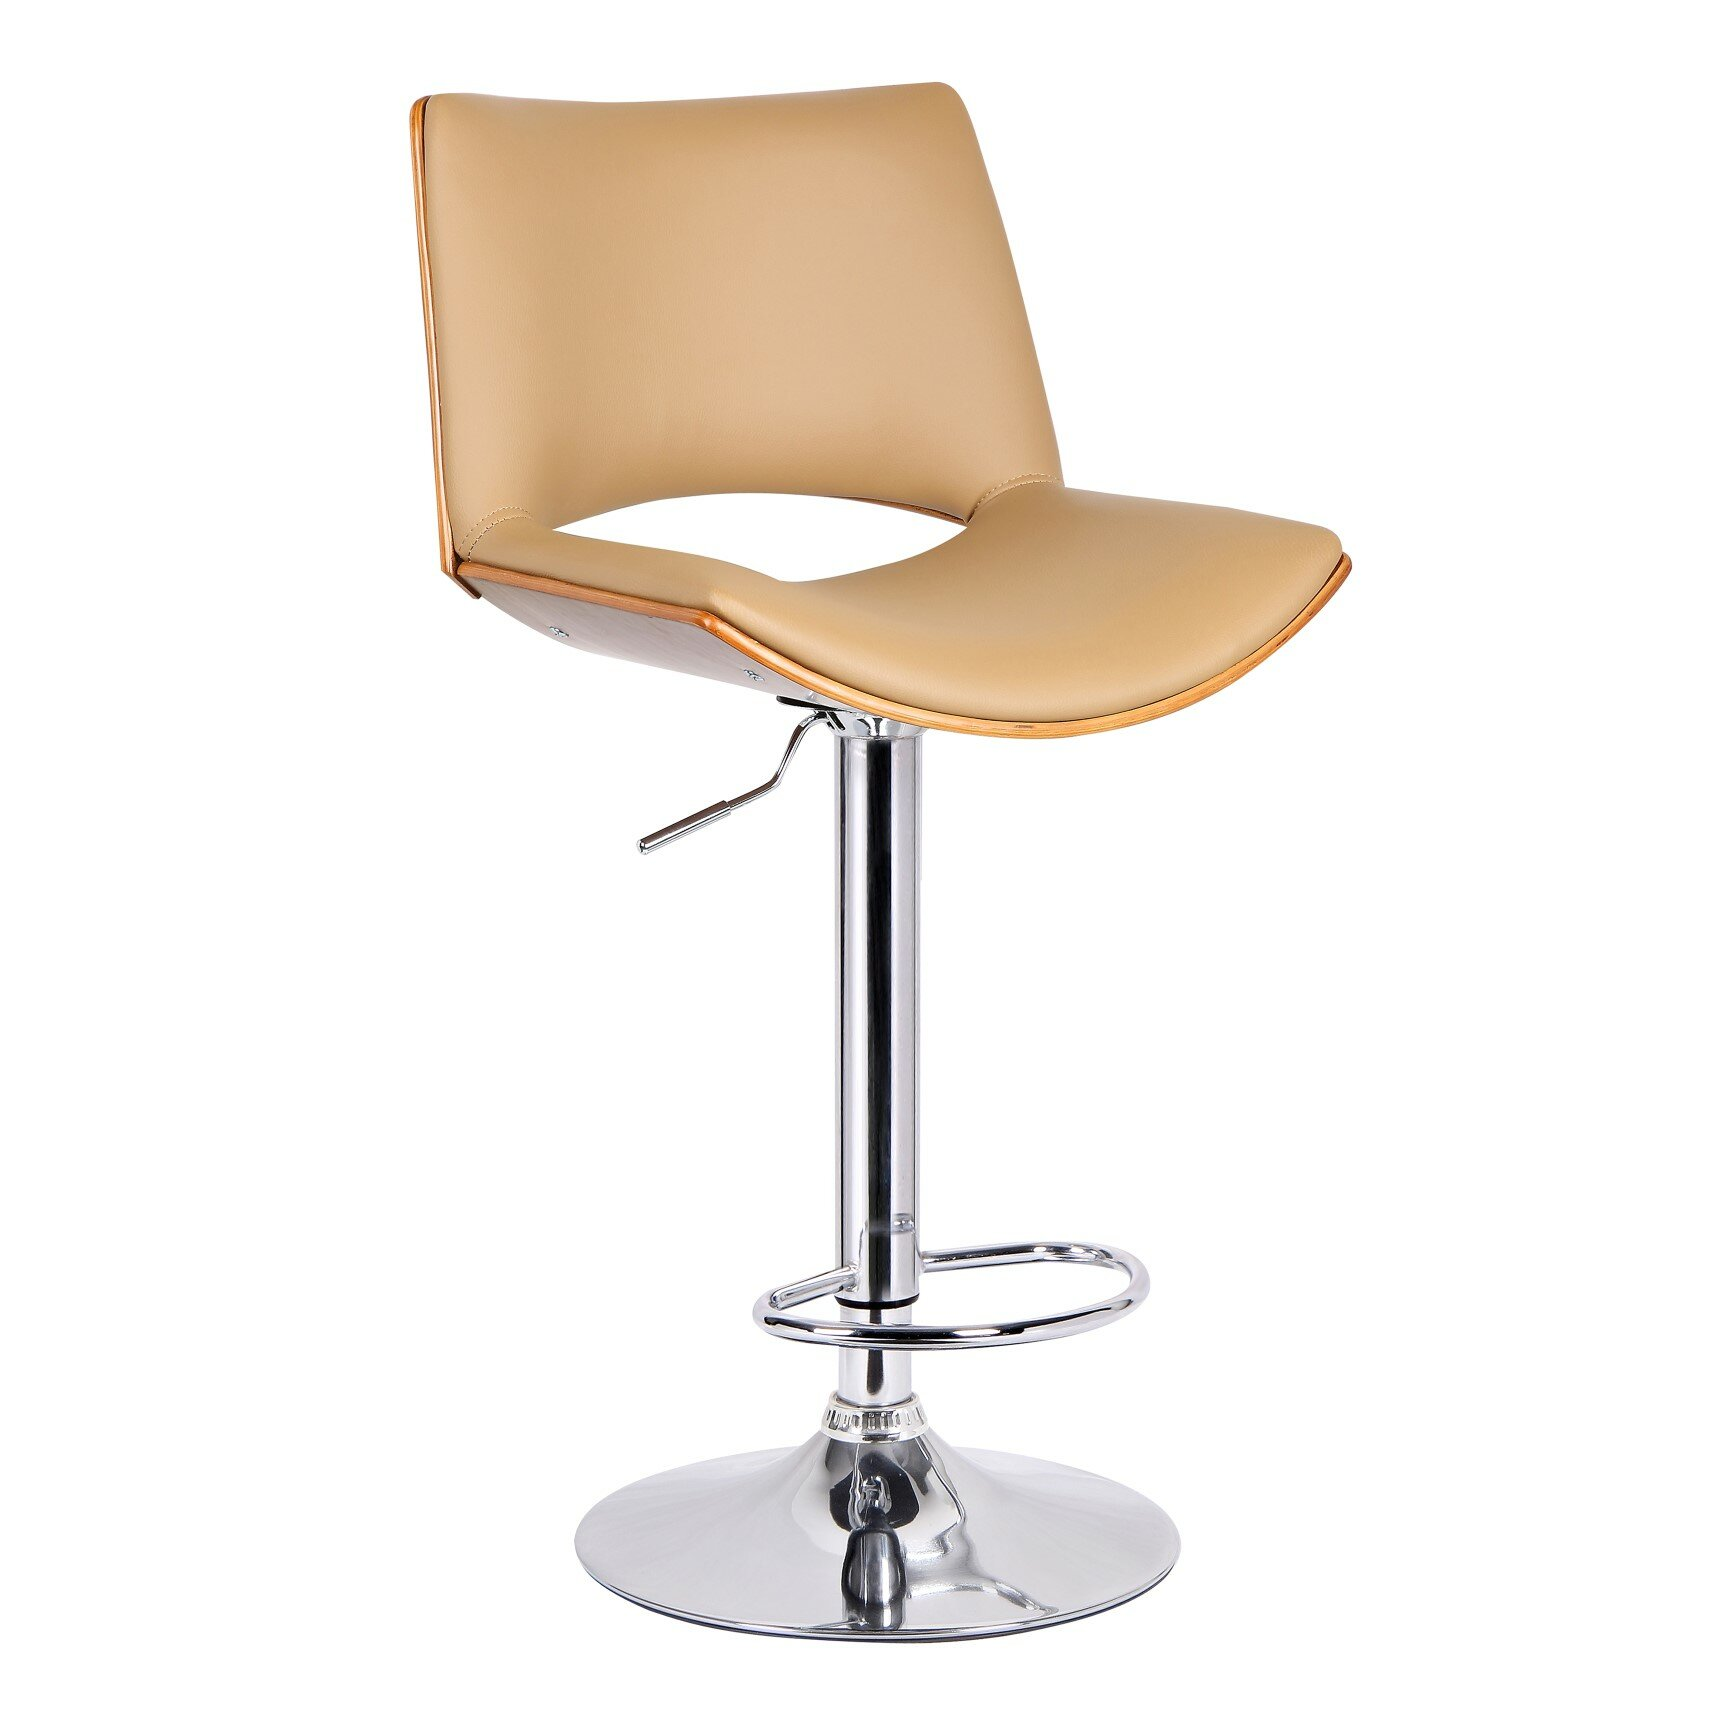 Porthos Home Adjustable Height Swivel Bar Stool Amp Reviews